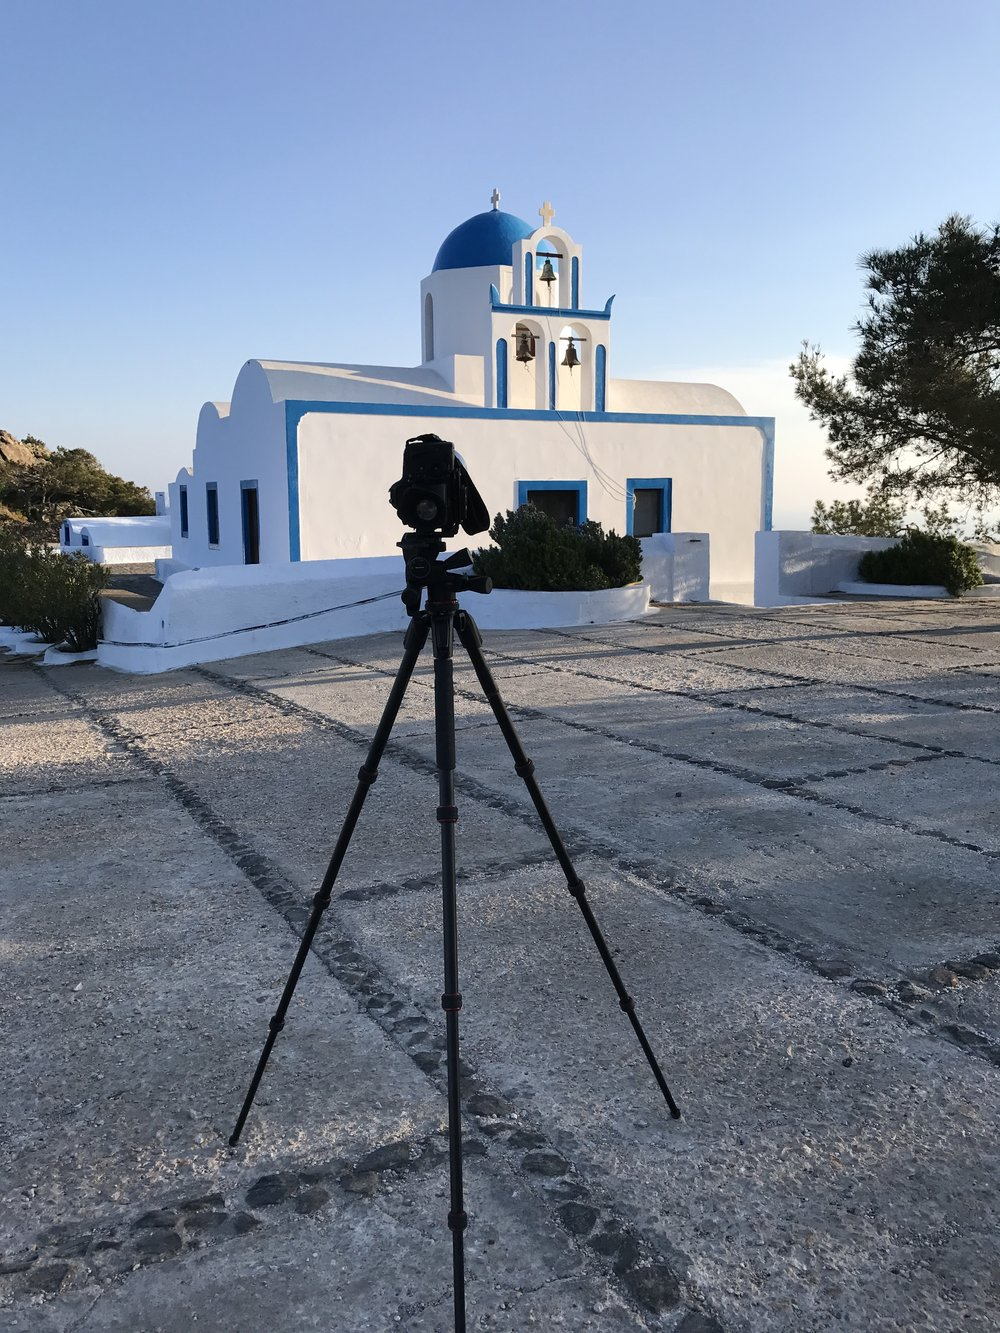 Manfrotto 190 Go tripod on location in Santorini